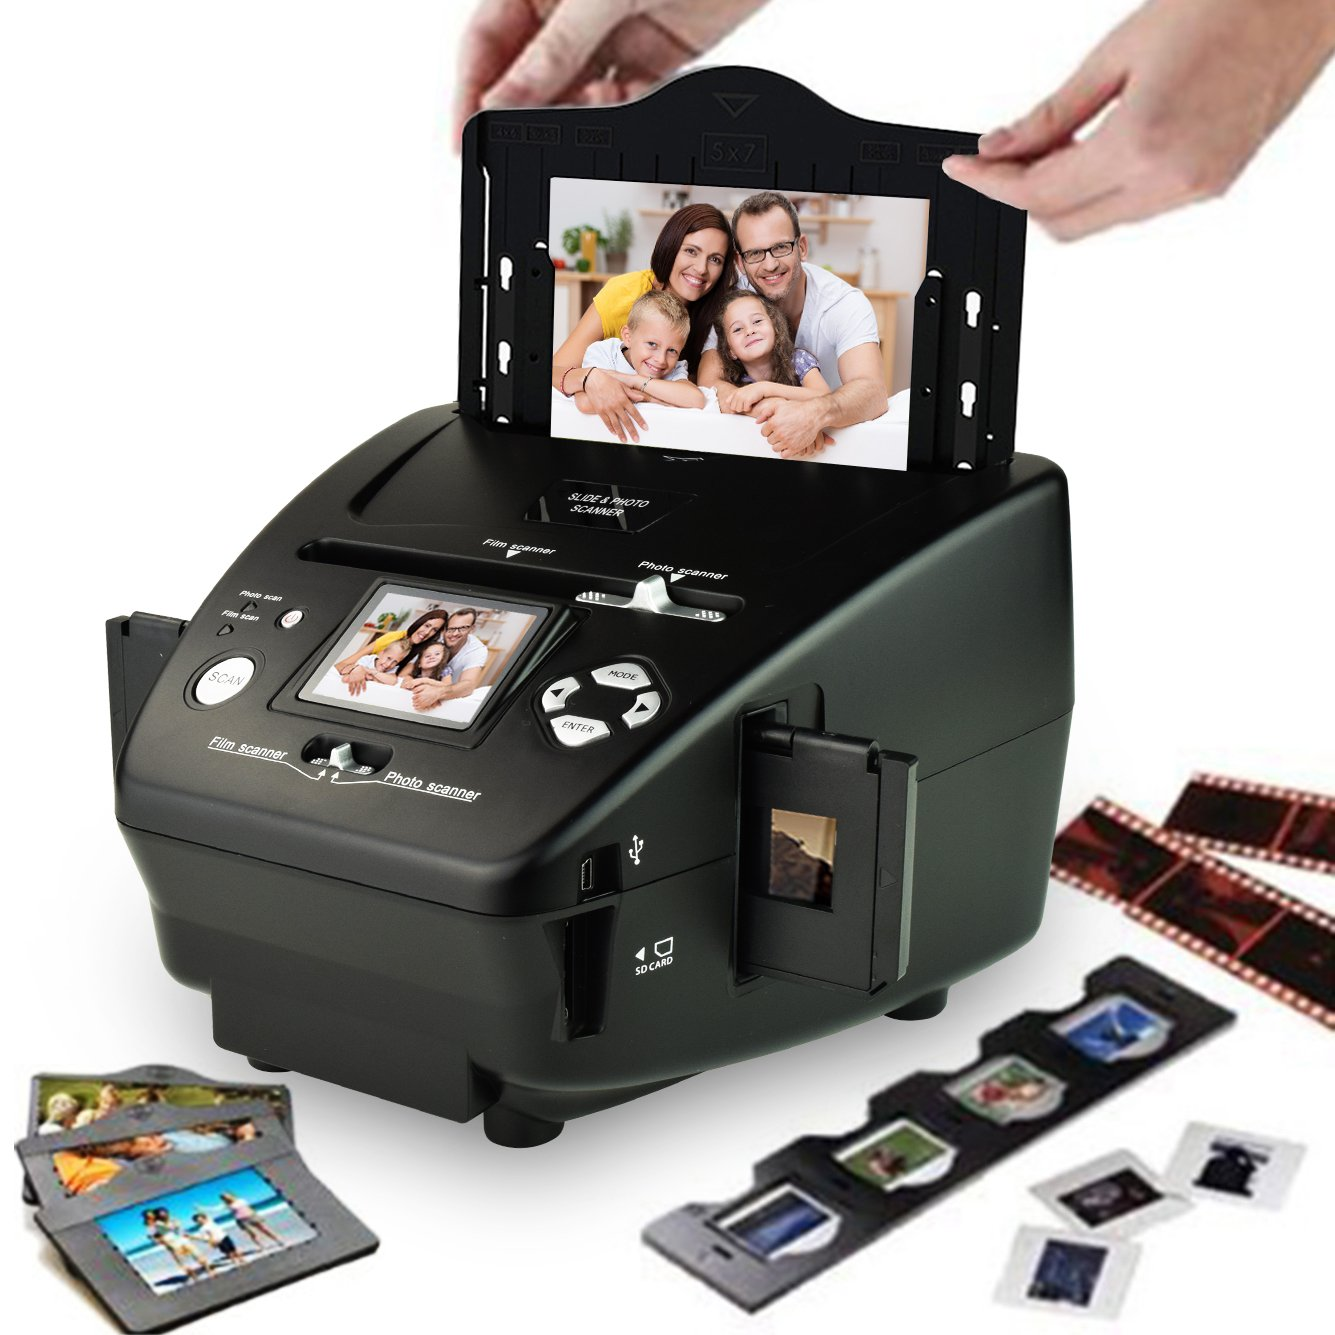 DIGITNOW 5M/10M 35mm Slides&Negatives Film Scanner Photo, Name Card, Slides and Negatives to Digital Converter for Saving Films to Digital Files in SD card(Included) with Photo Editing Software by DigitNow! (Image #2)